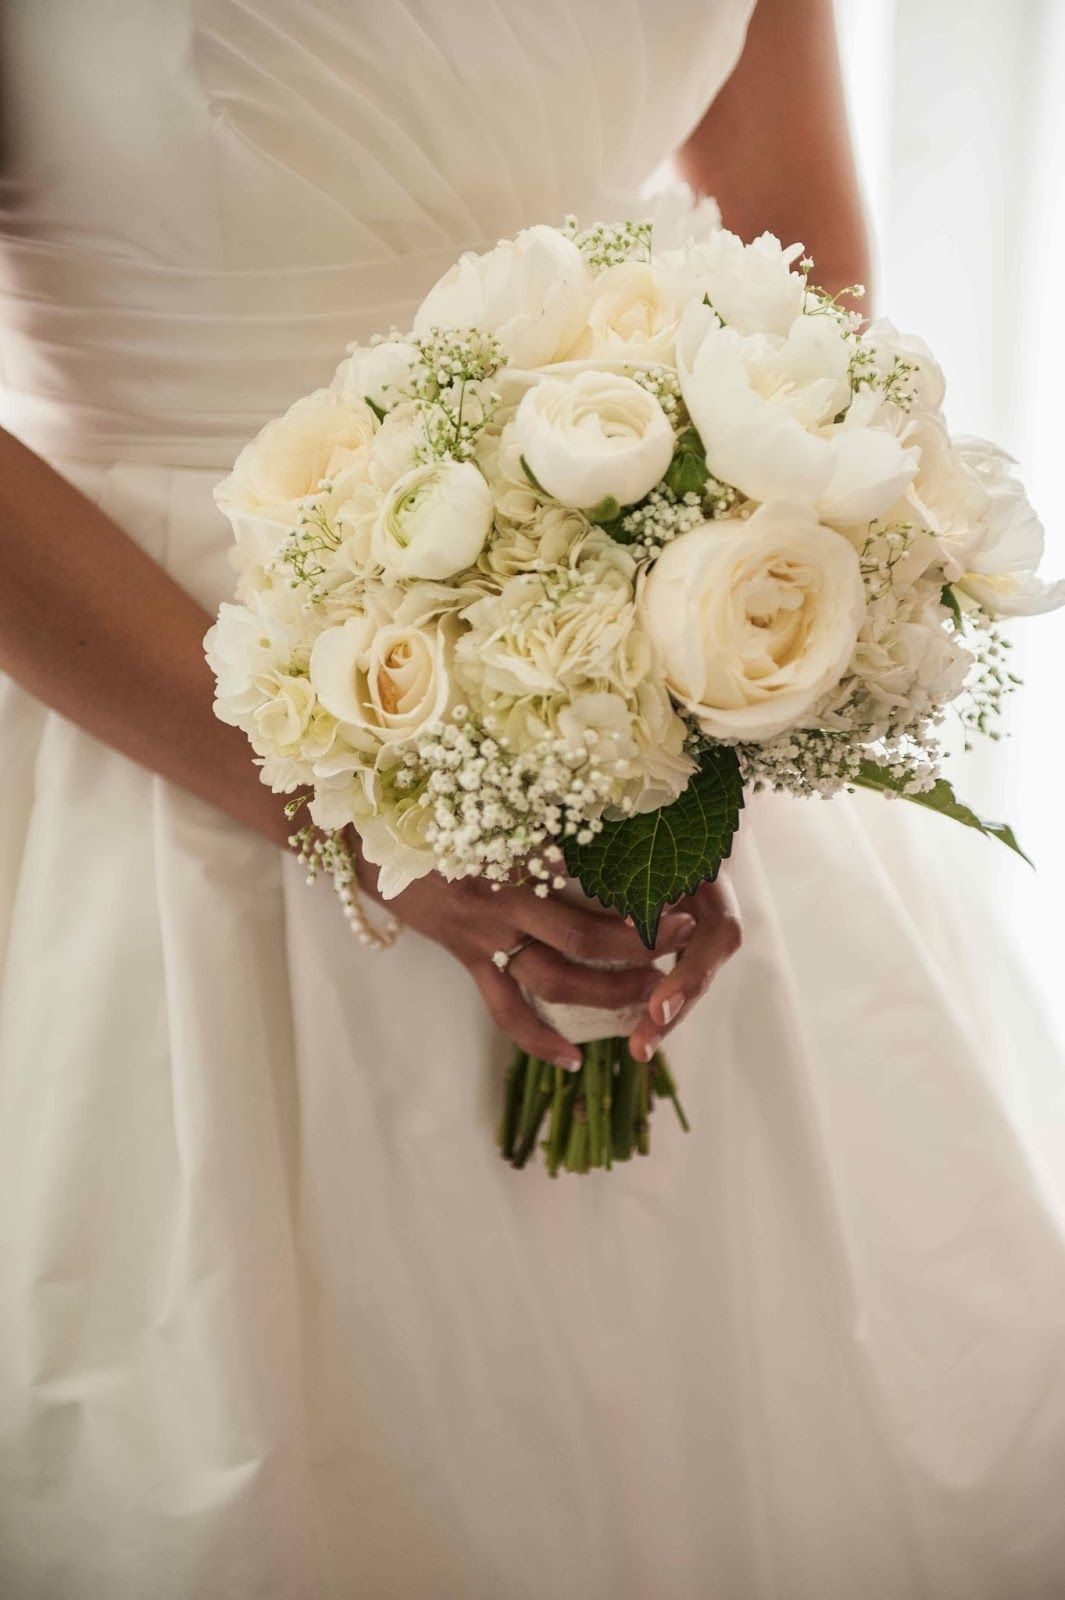 Bouquet Sposa Rose E Peonie.An All White Bridal Bouquet Featuring Babies Breath Peony